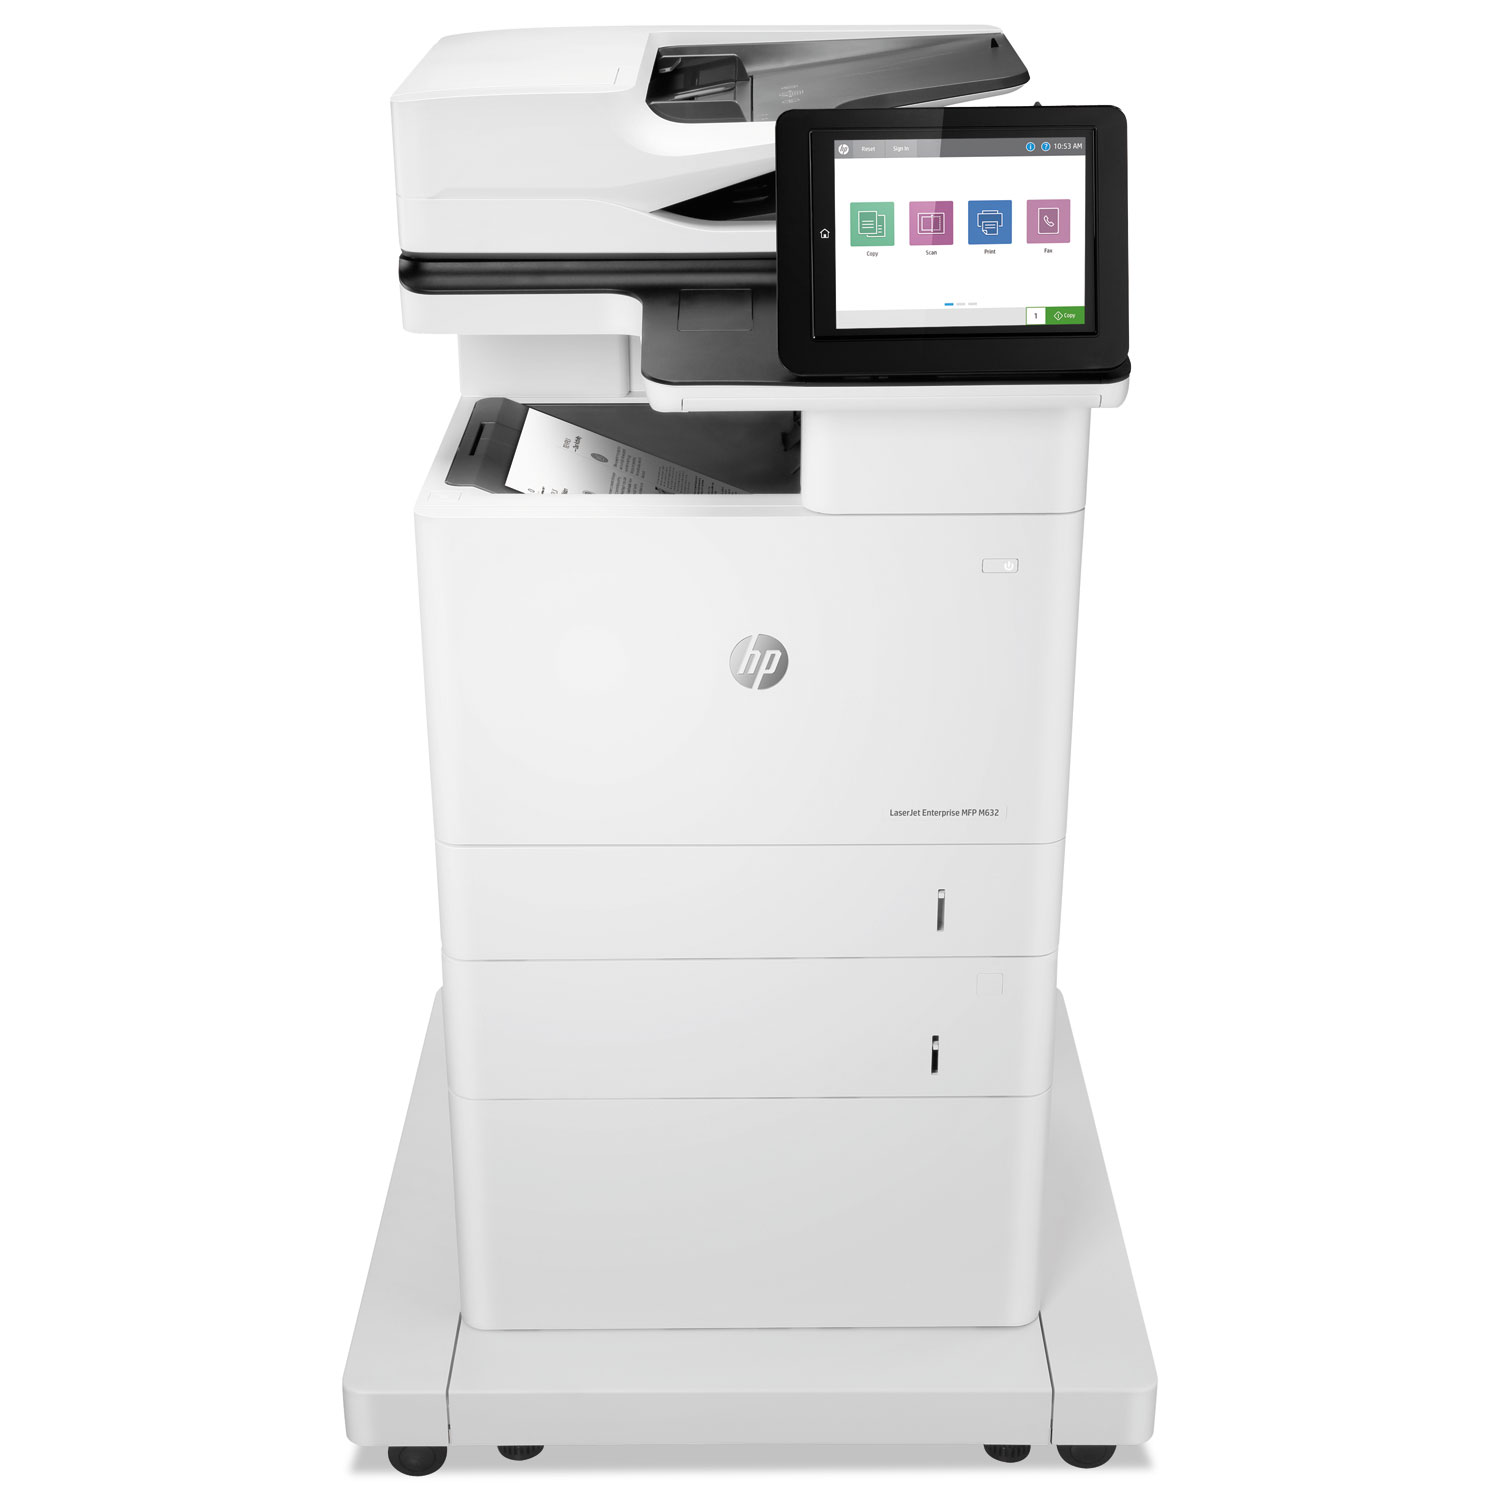 LaserJet Enterprise MFP M632fht, Copy/Fax/Print/Scan